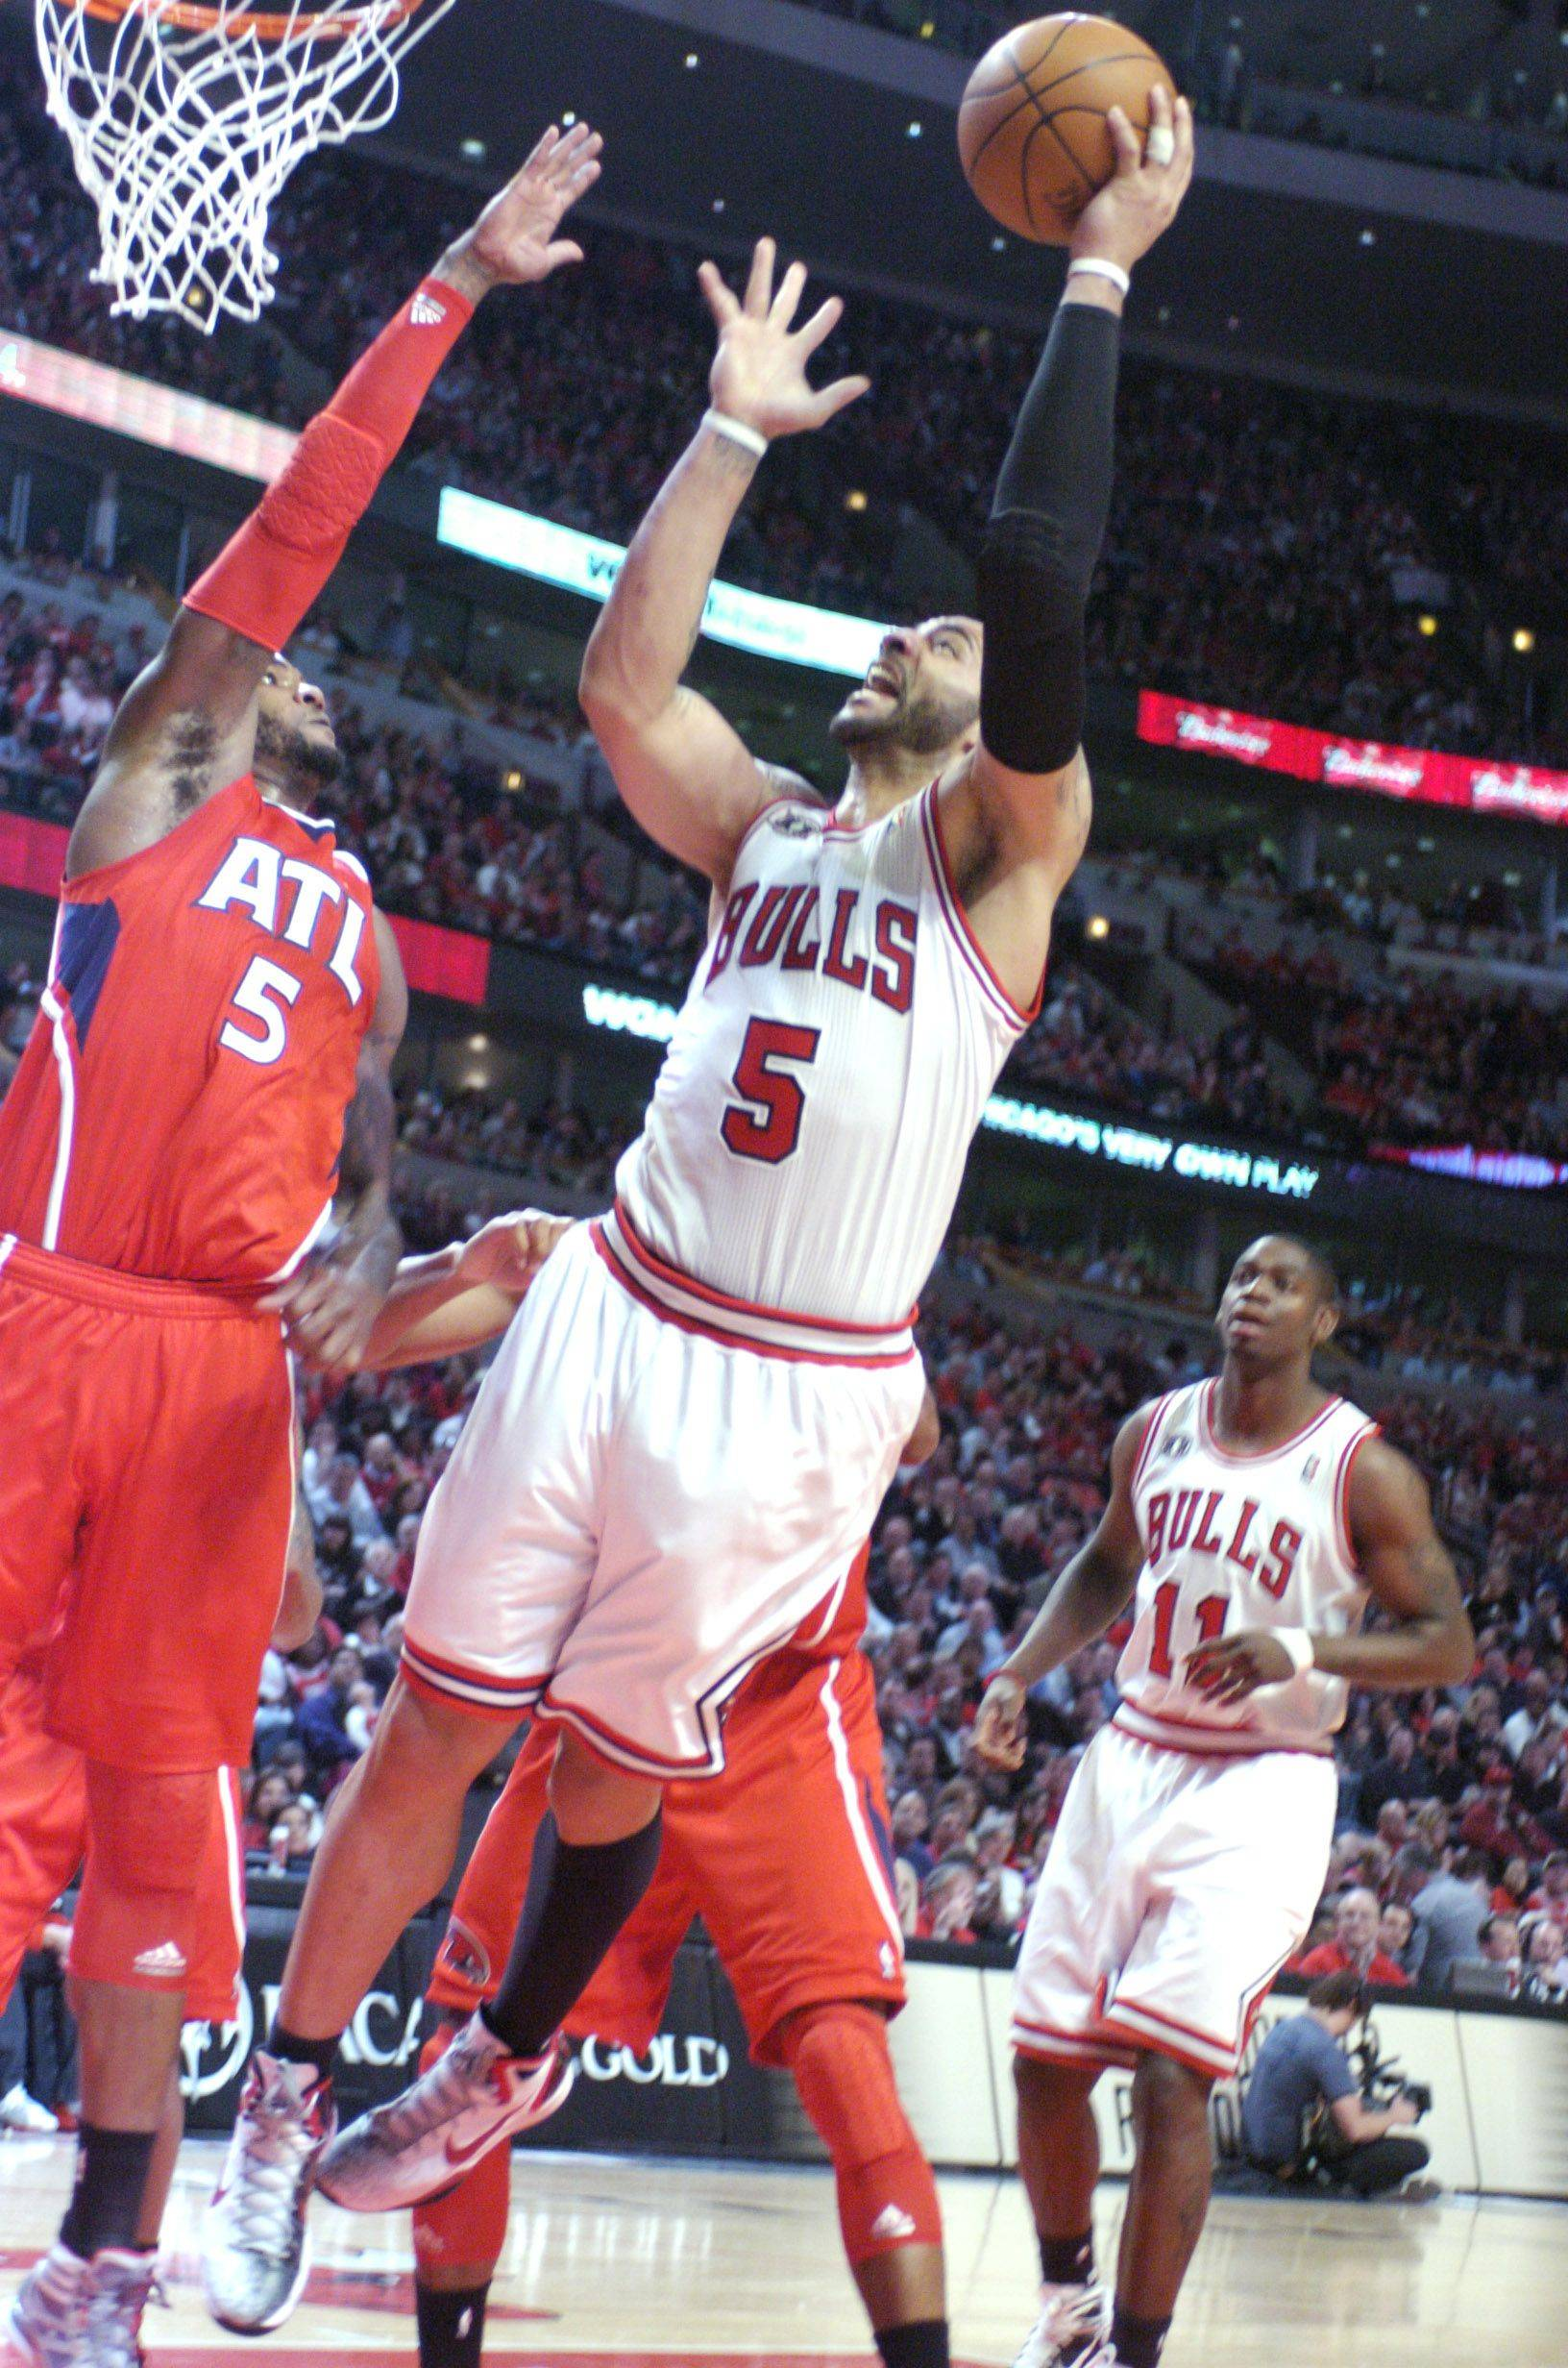 Carlos Boozer takes a shot against the defense of Josh Smith of the Hawks during Wednesday's game.